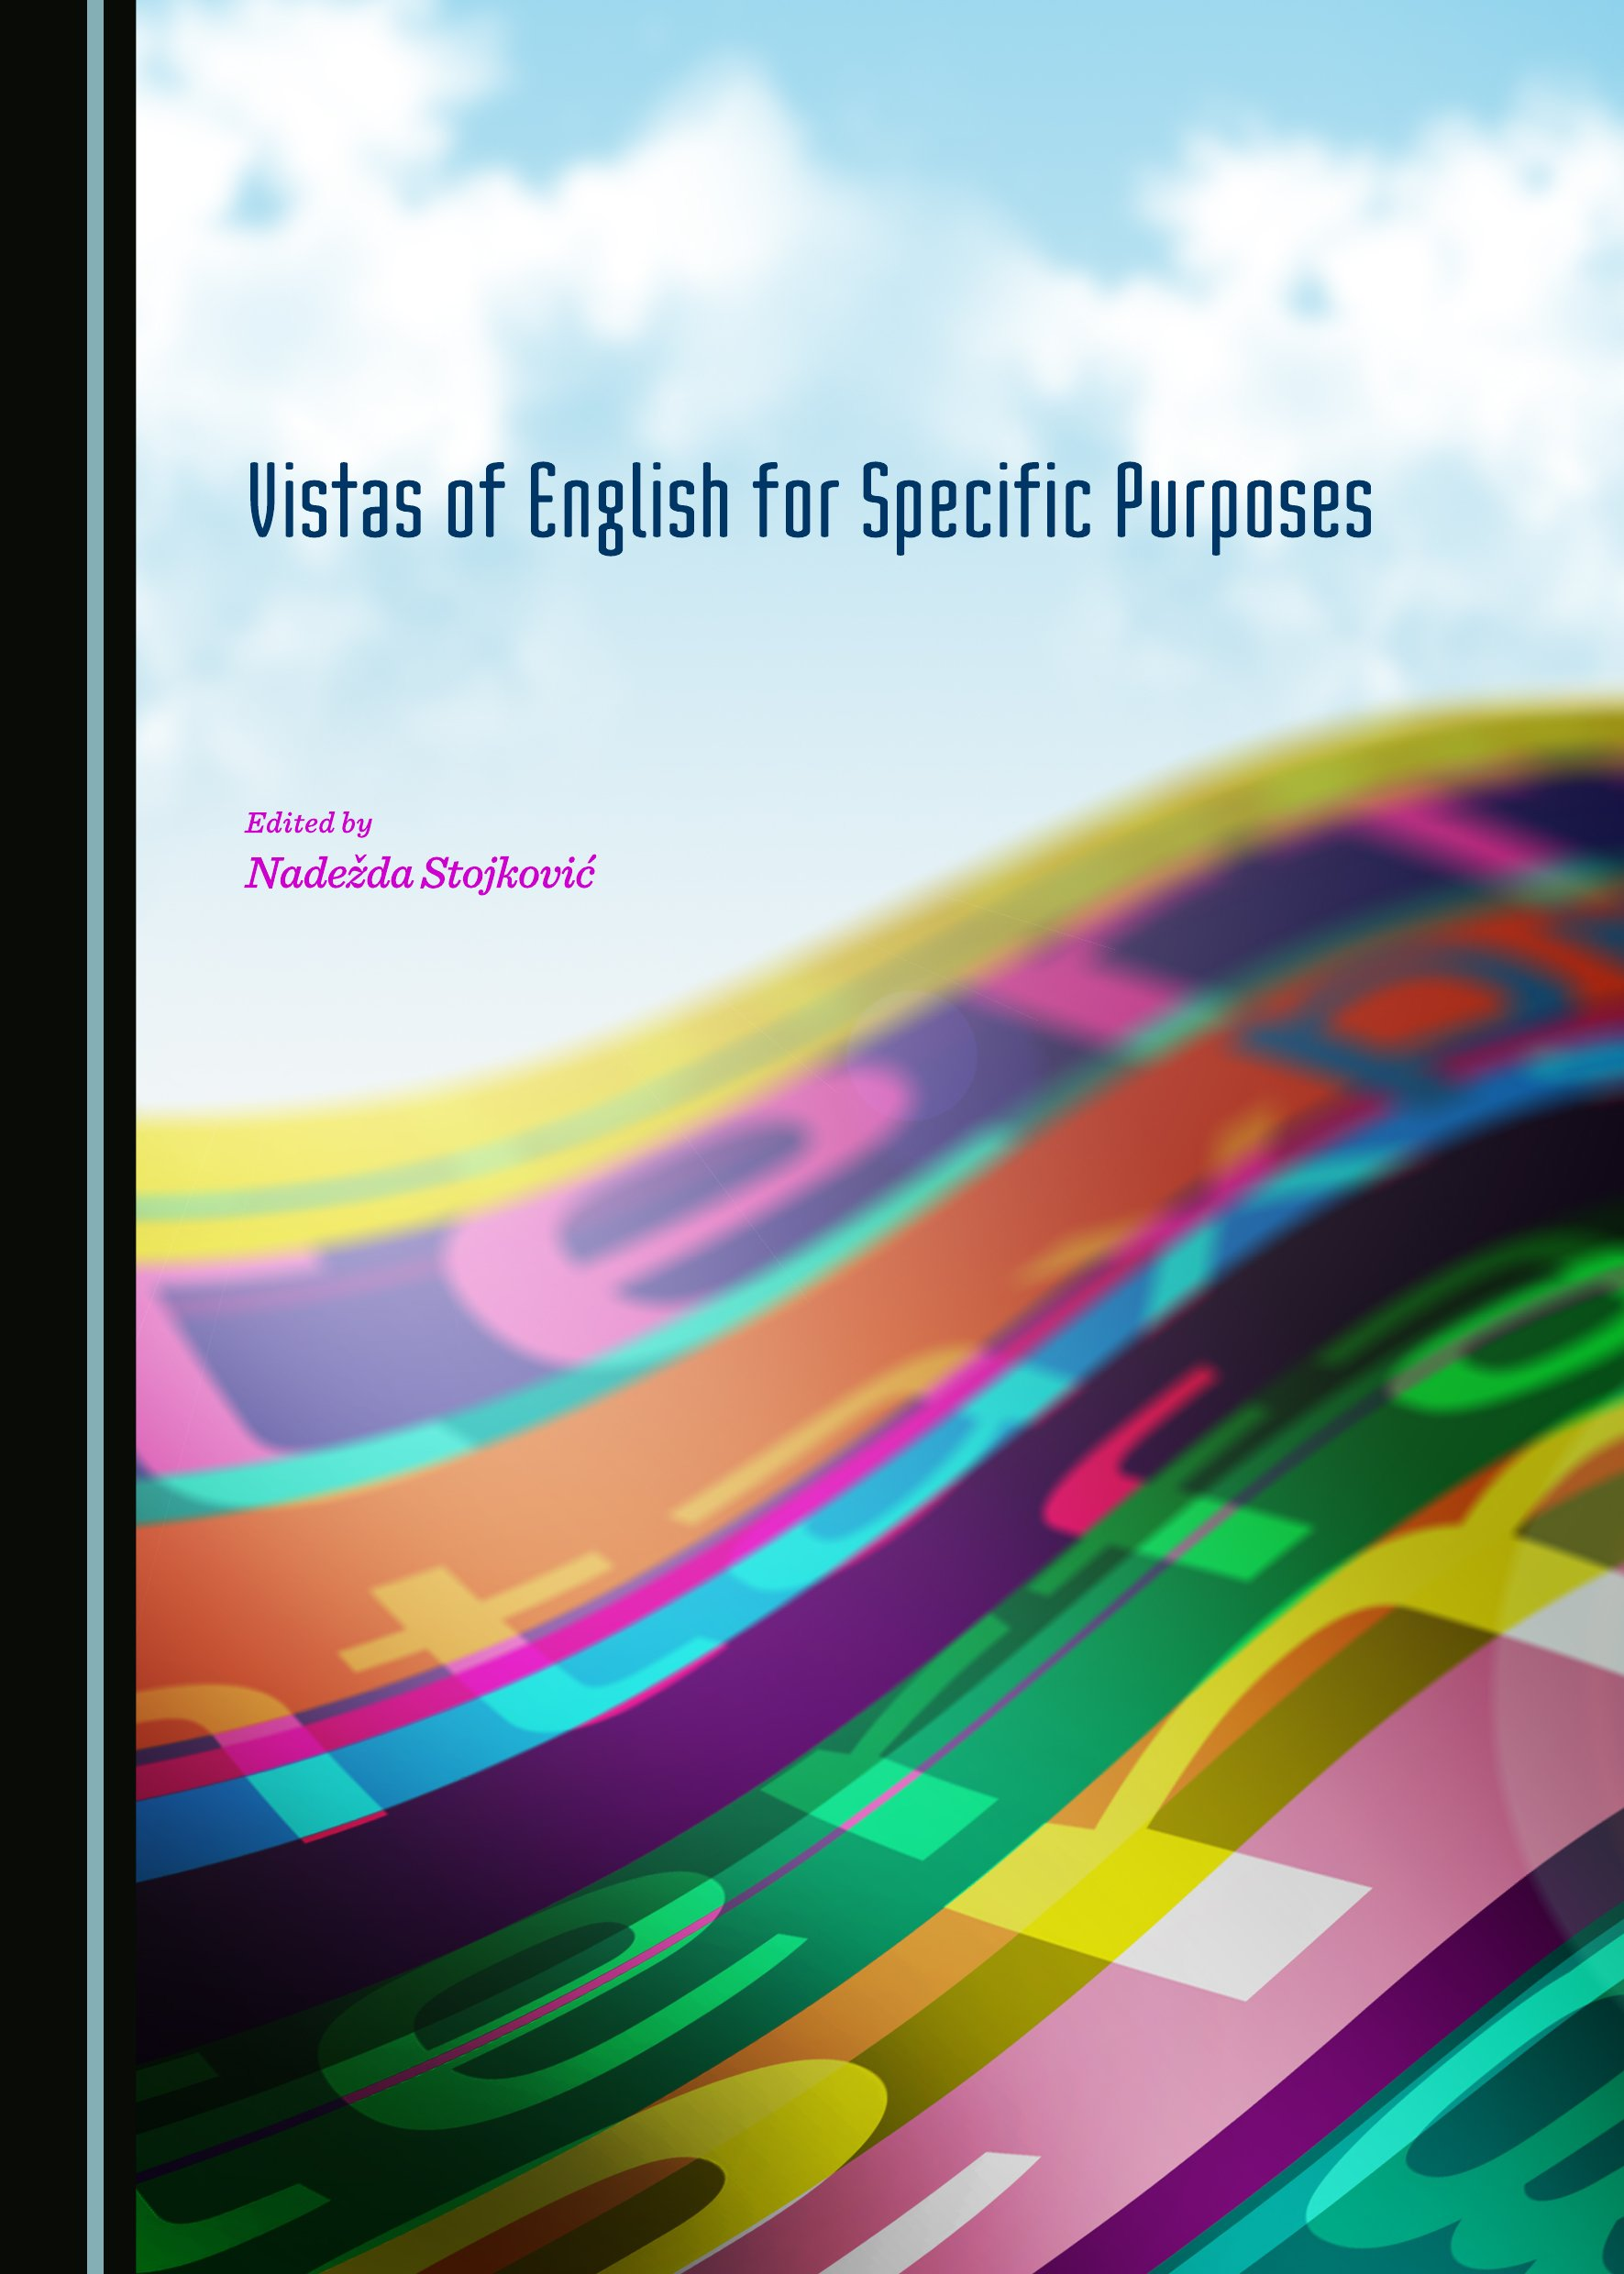 Vistas of English for Specific Purposes